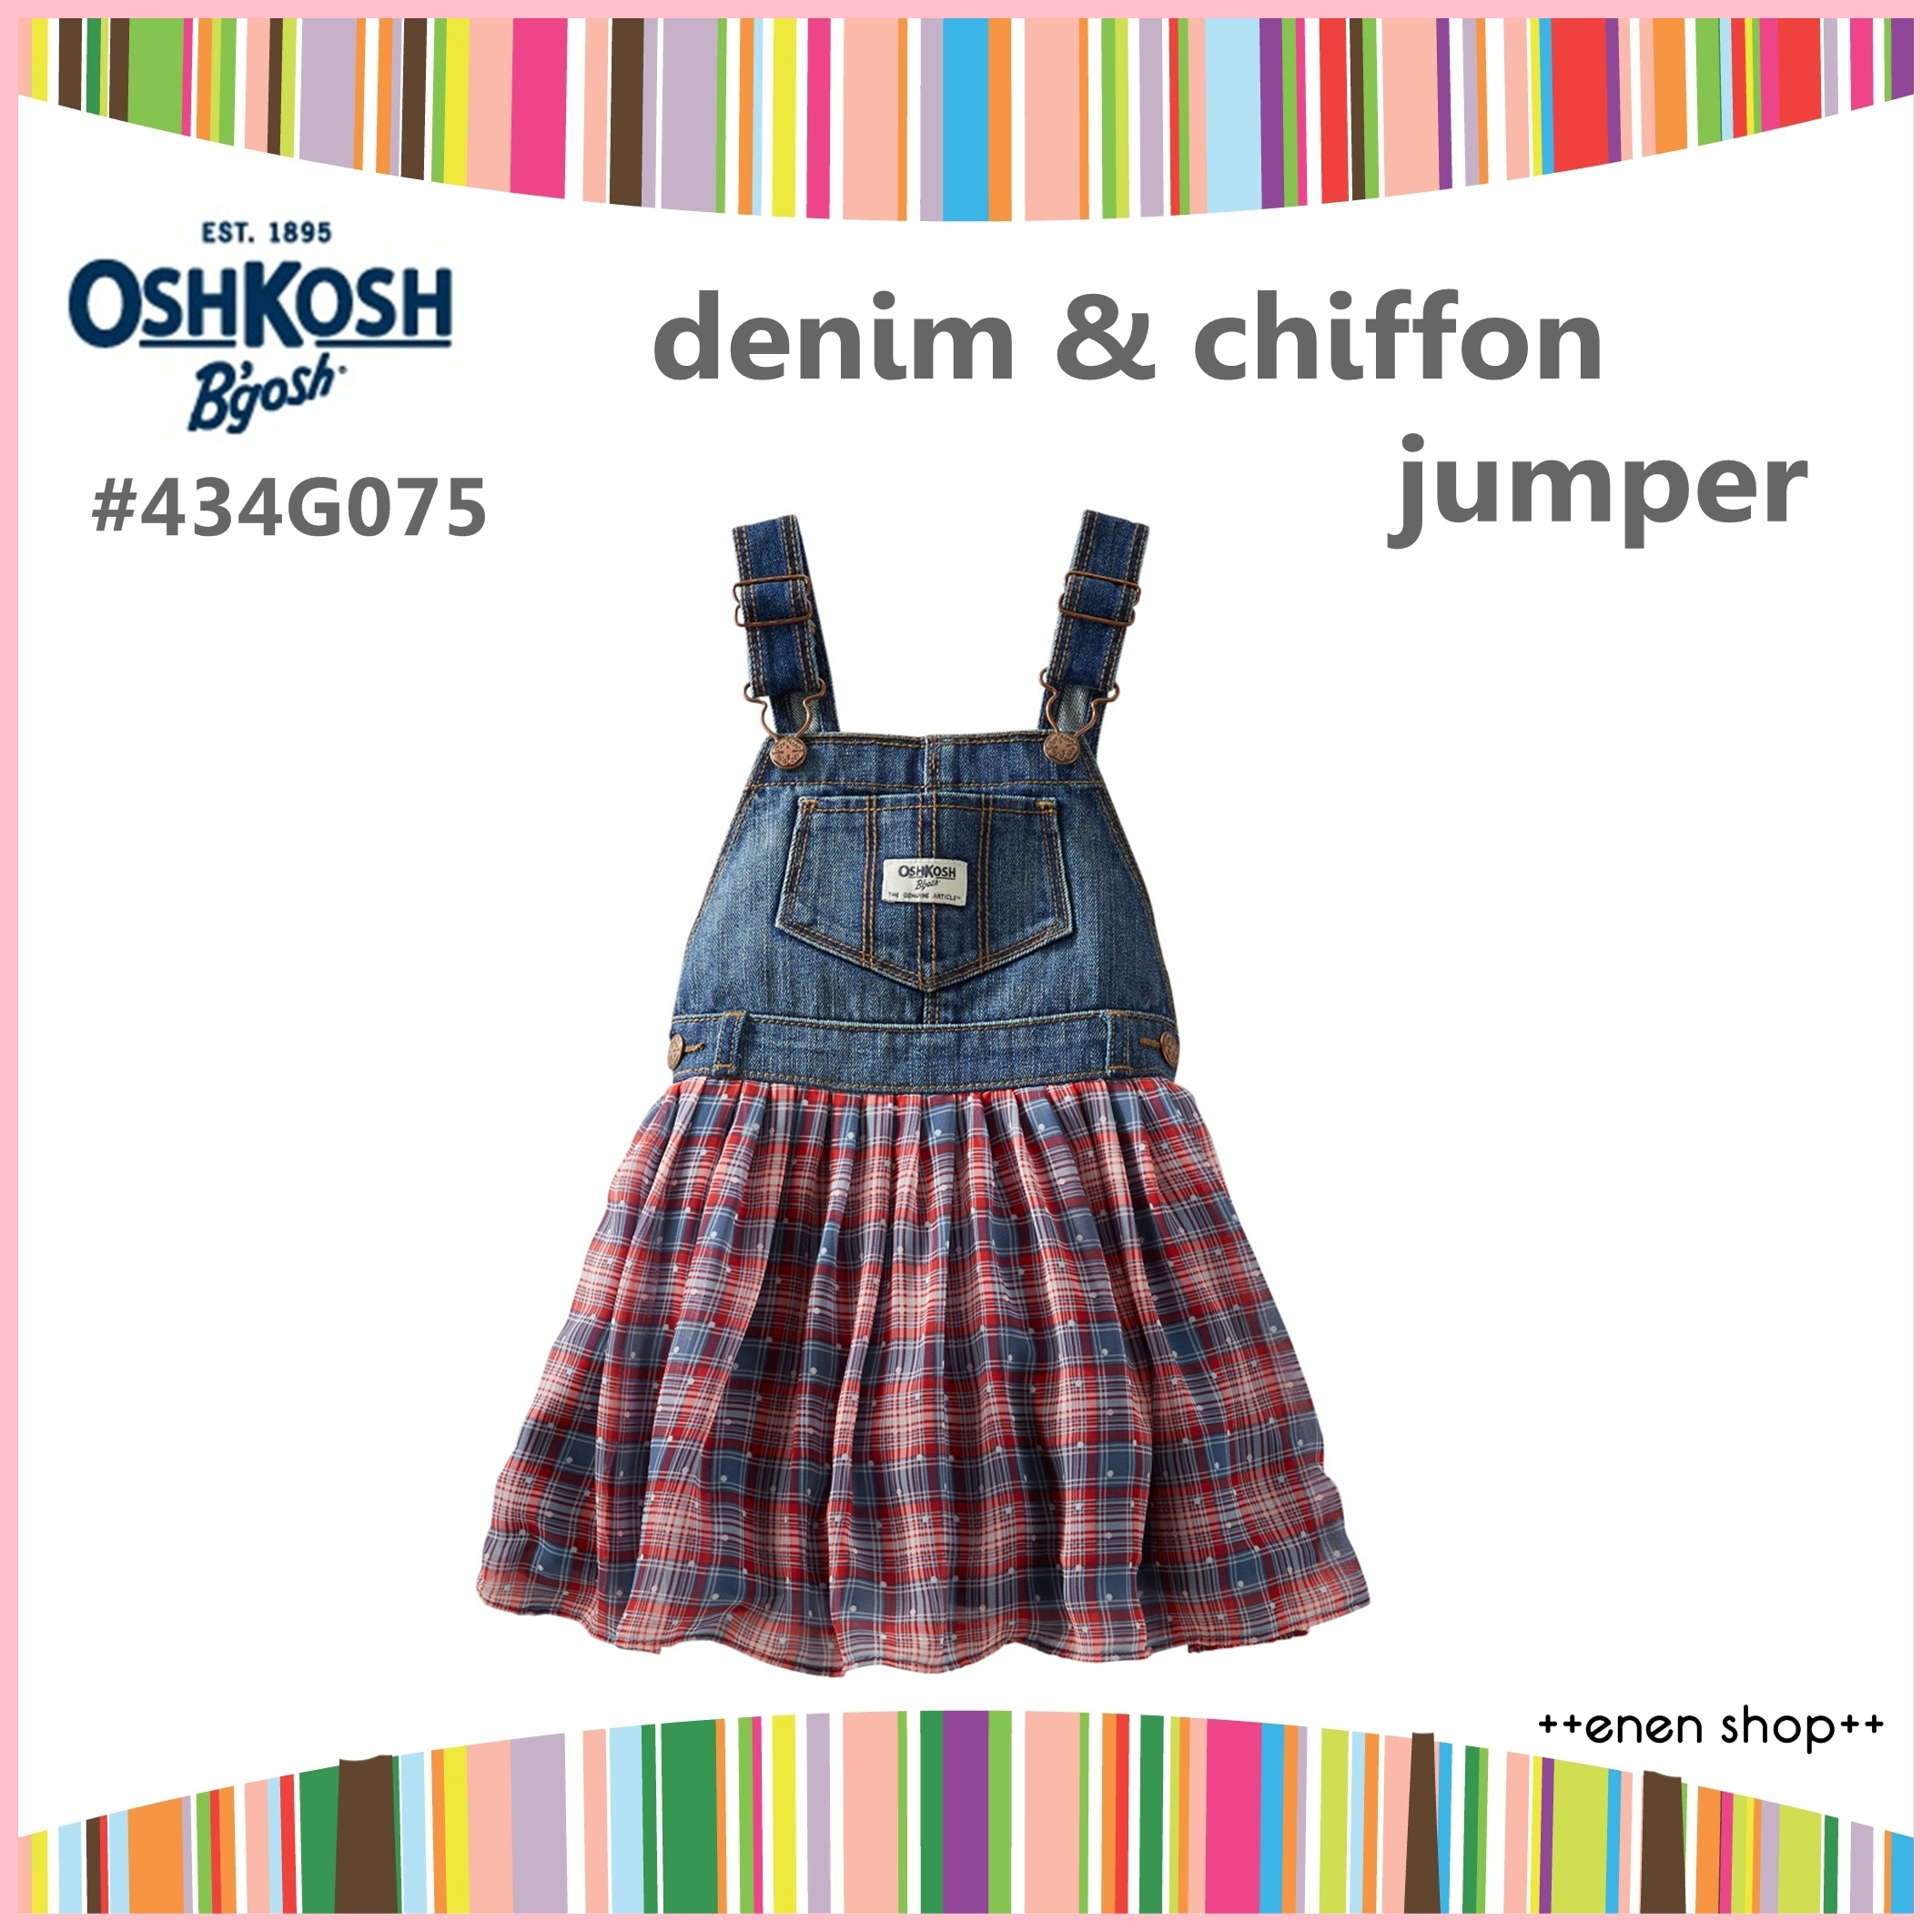 ++enen shop++ OshKosh B'gosh 單寧格紋款吊帶裙 ∥ 12M/18M/24M/2T/4T